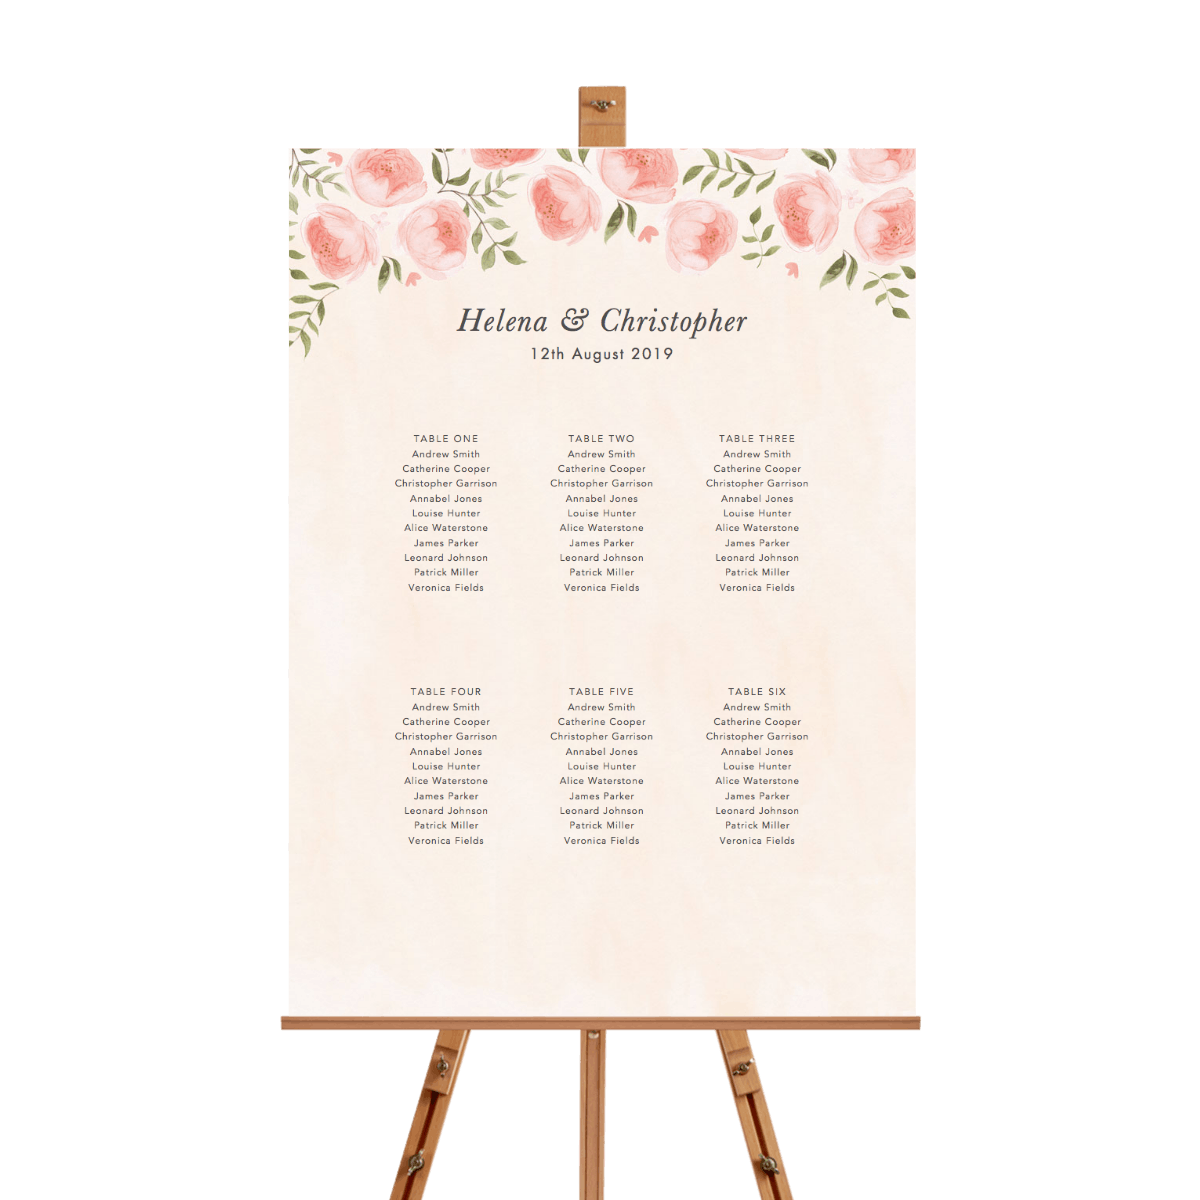 Https%3a%2f%2fwww.papier.com%2fproduct image%2f40940%2f1%2fblooming peonies 10357 front 1530718932.png?ixlib=rb 1.1